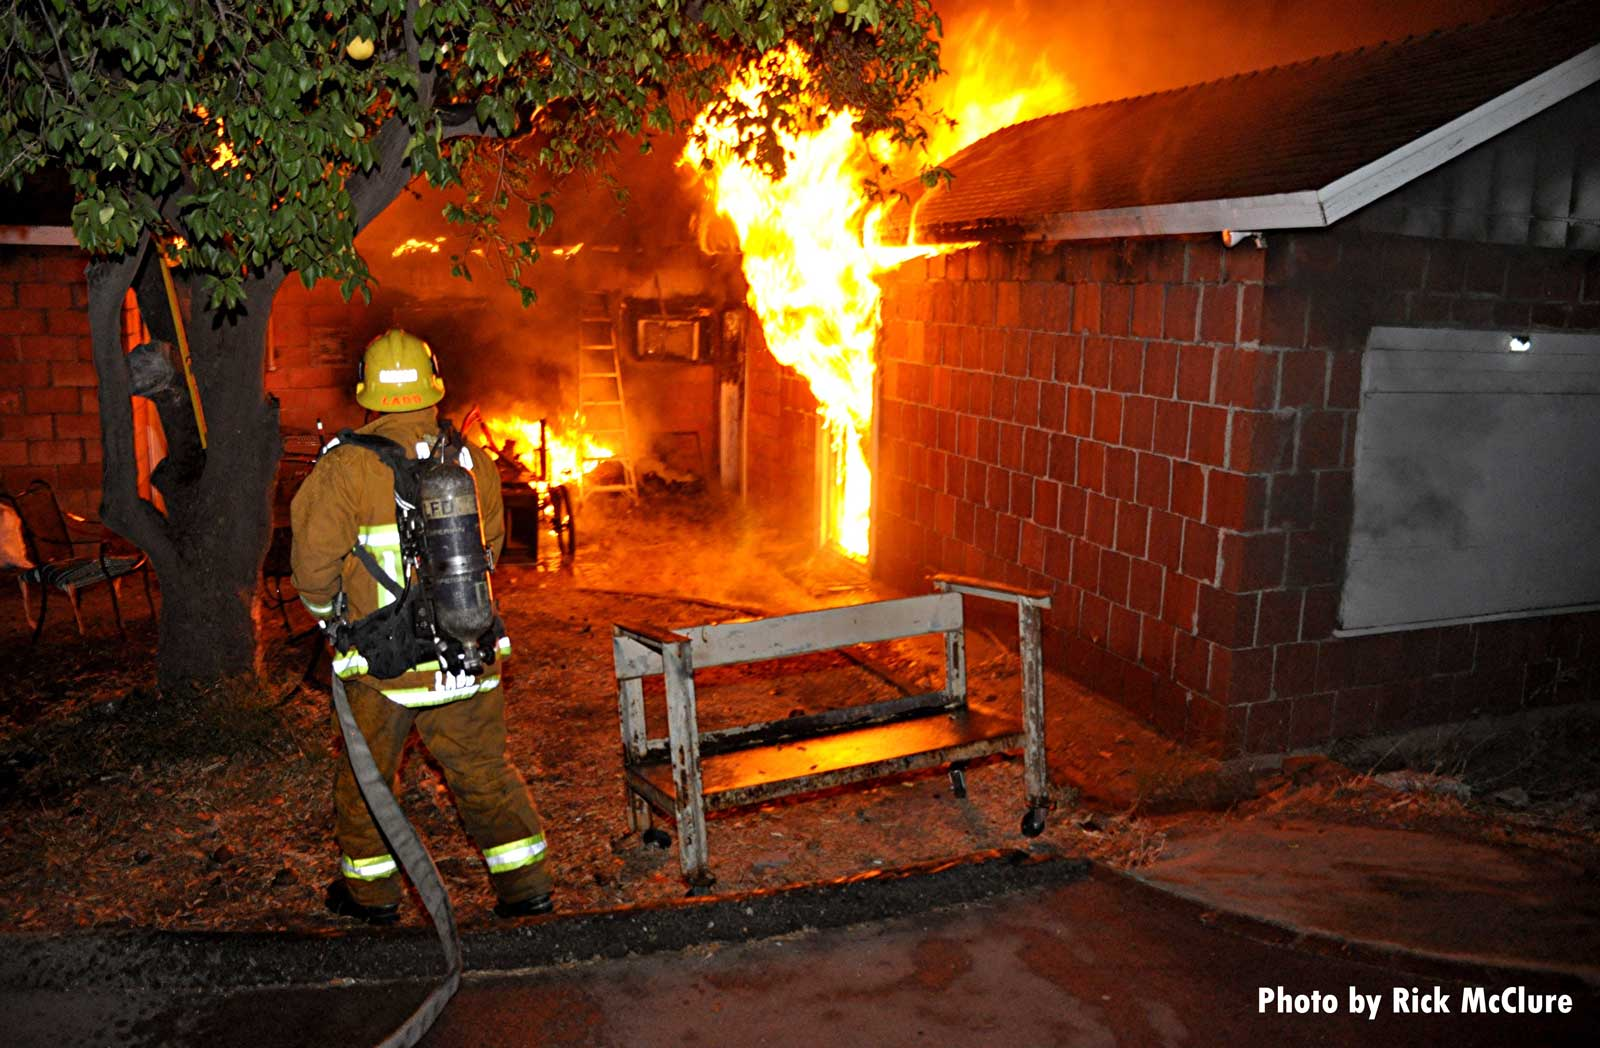 A firefighter with an uncharged hoseline observes raging house fire